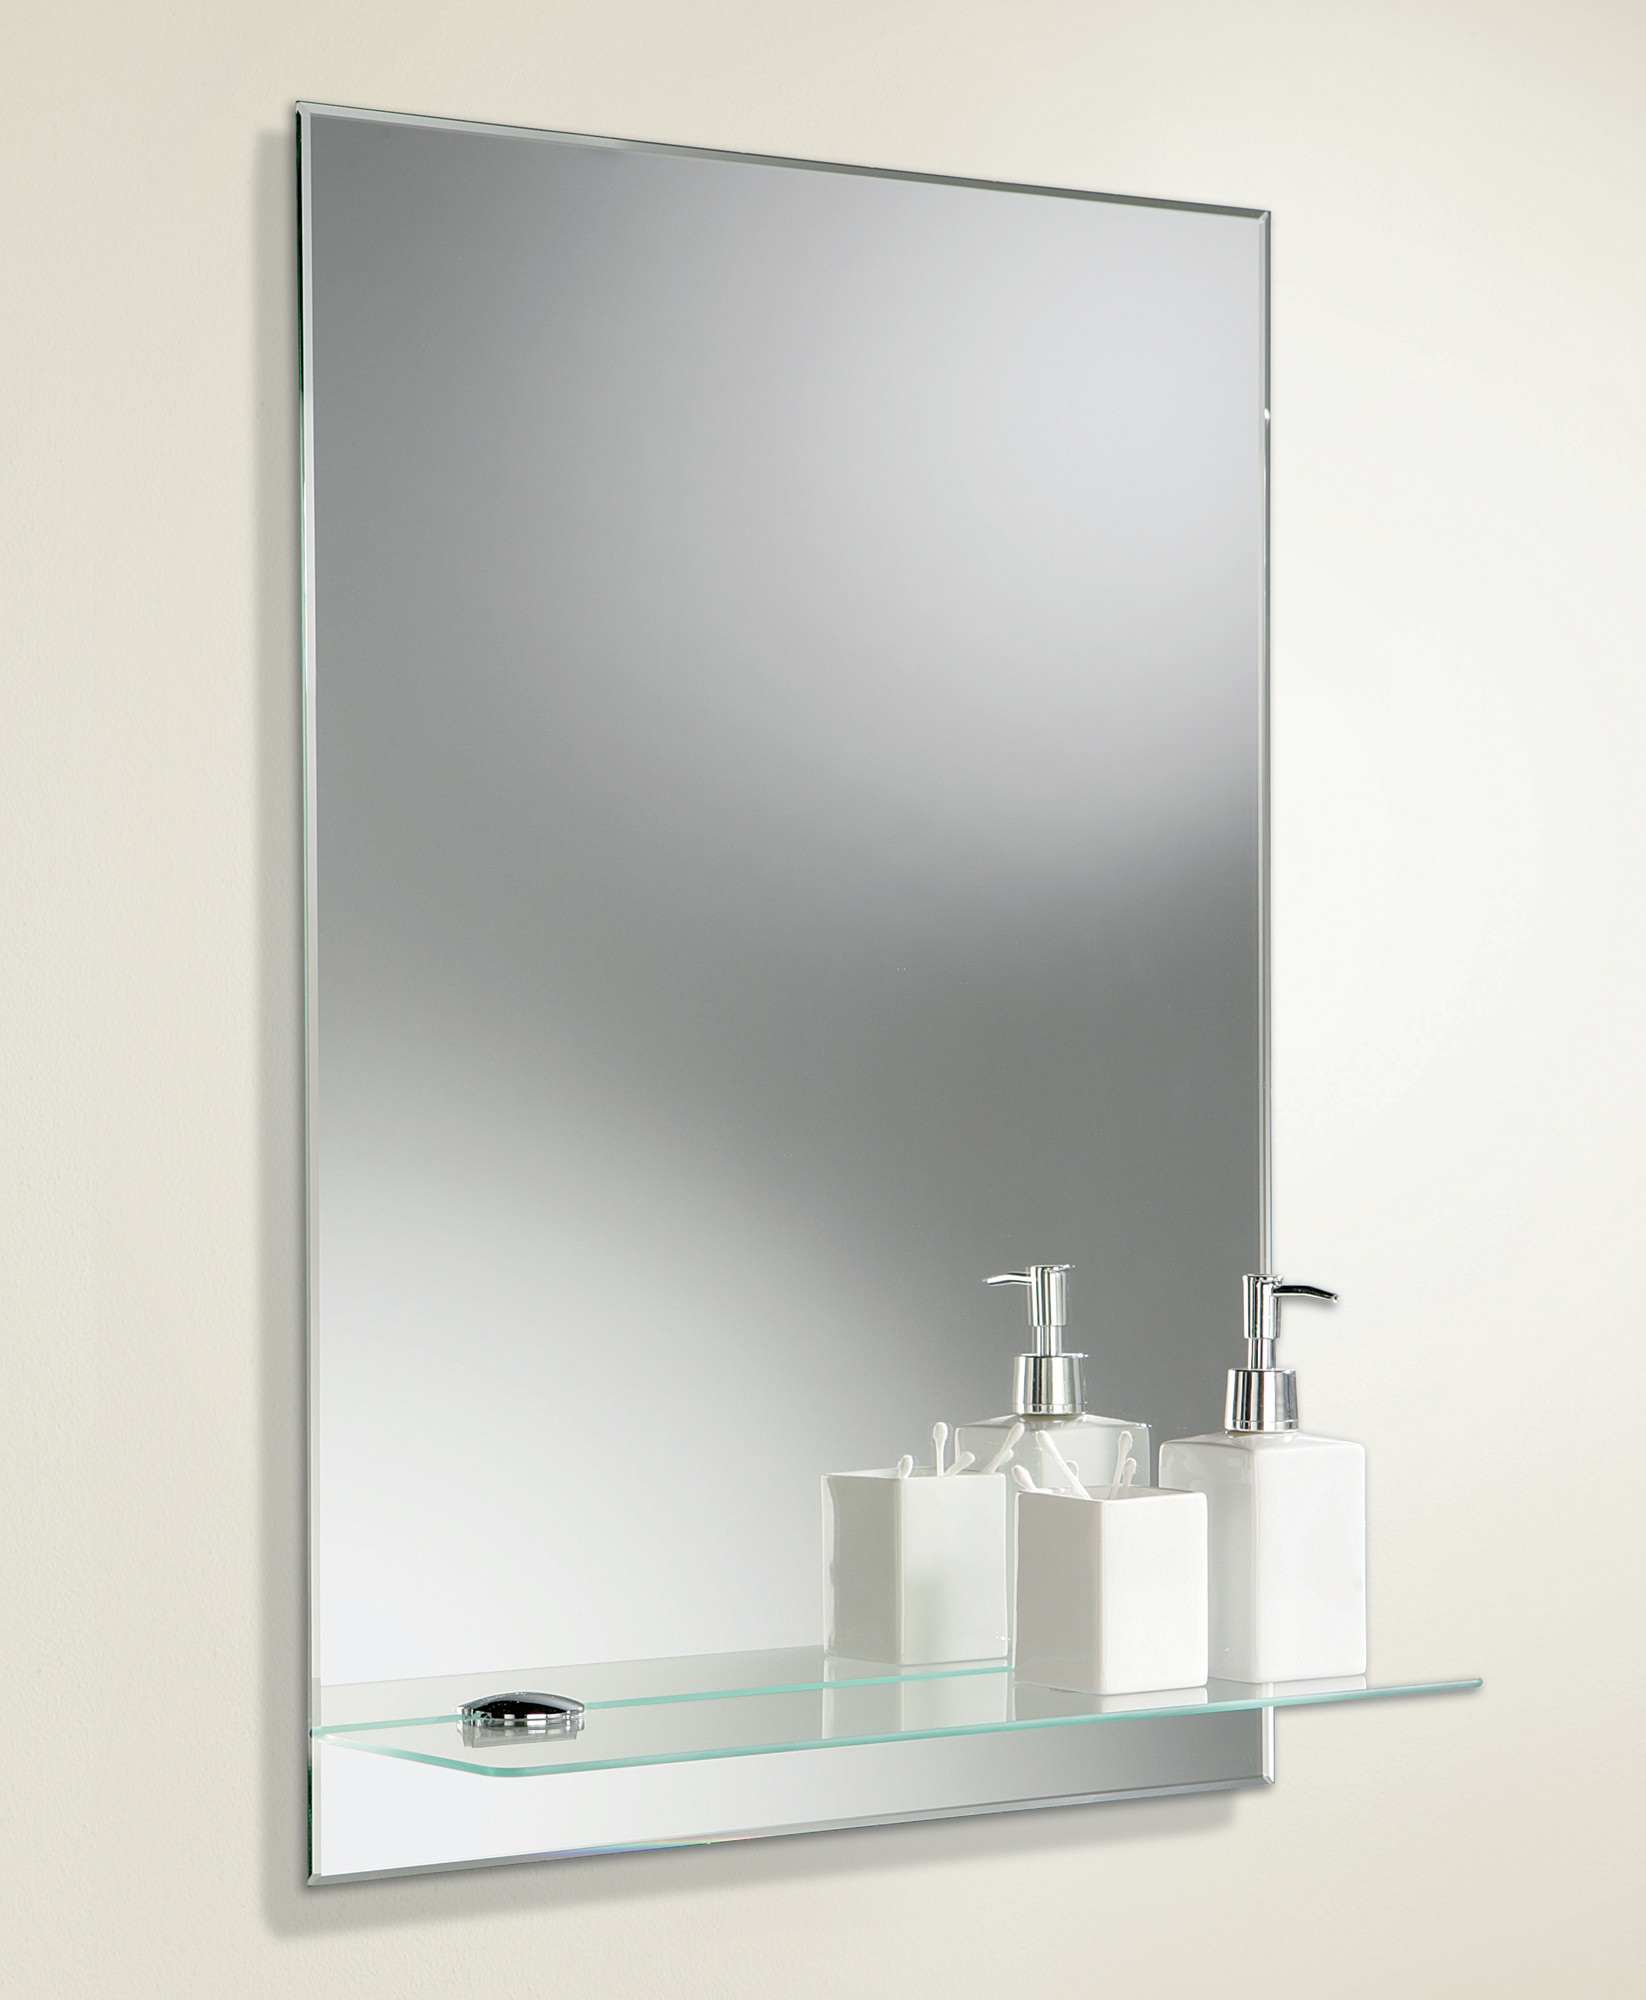 Hib Del Rectangular Bevelled Edge Mirror With Glass Shelf 72026000 Inside Bevelled Edge Bathroom Mirror (Image 7 of 15)